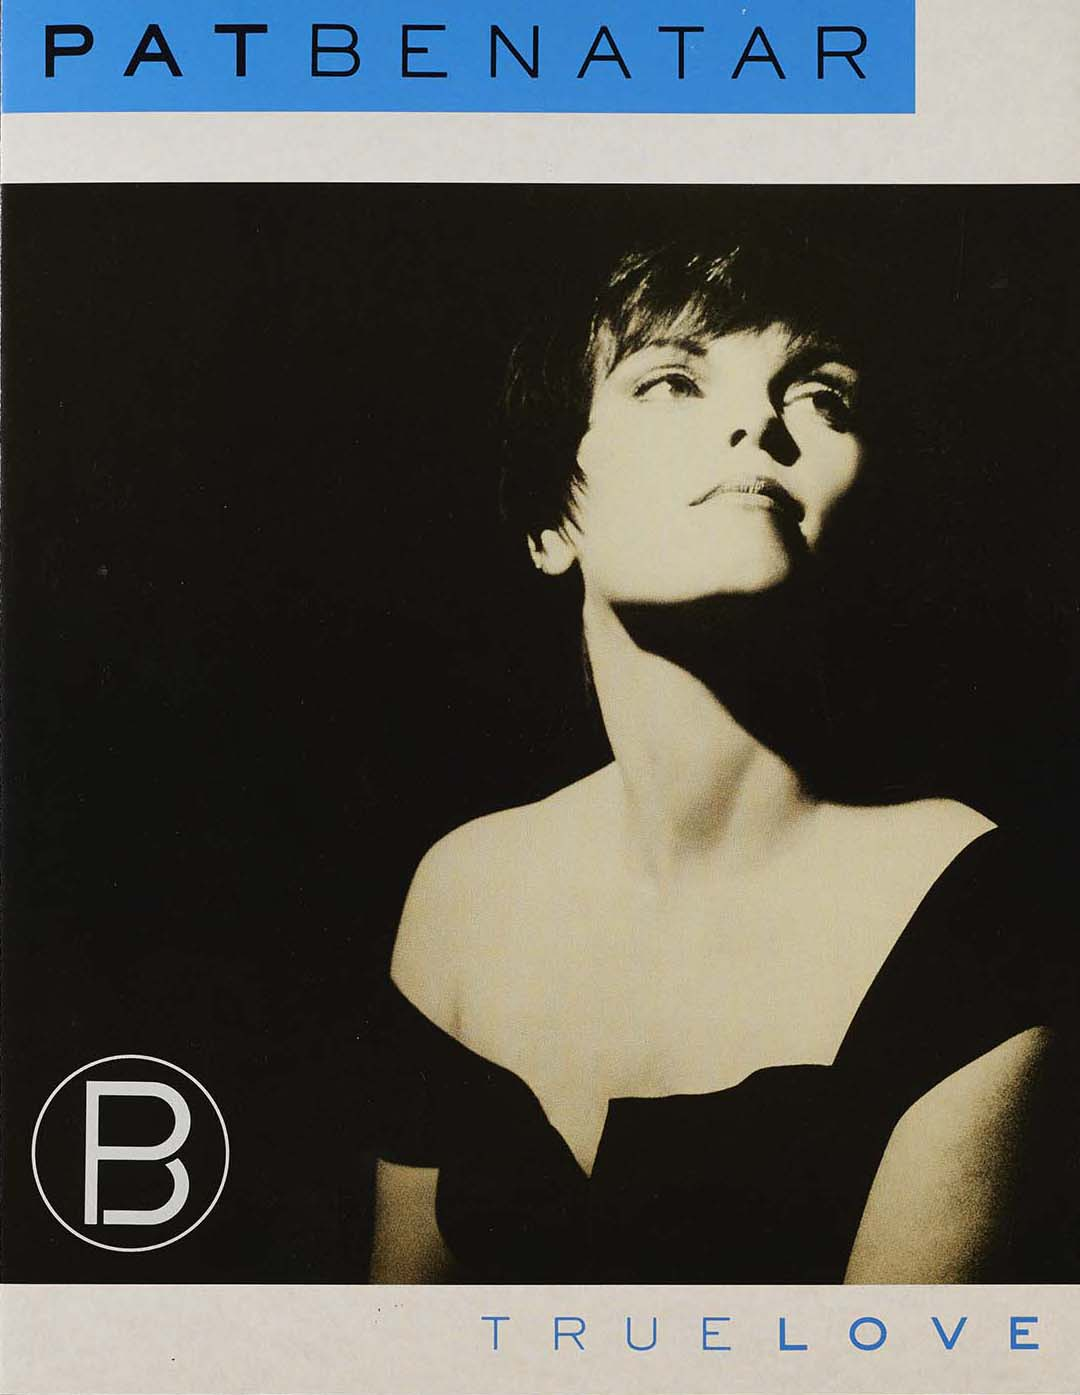 Pat Benatar Press Kit 1991